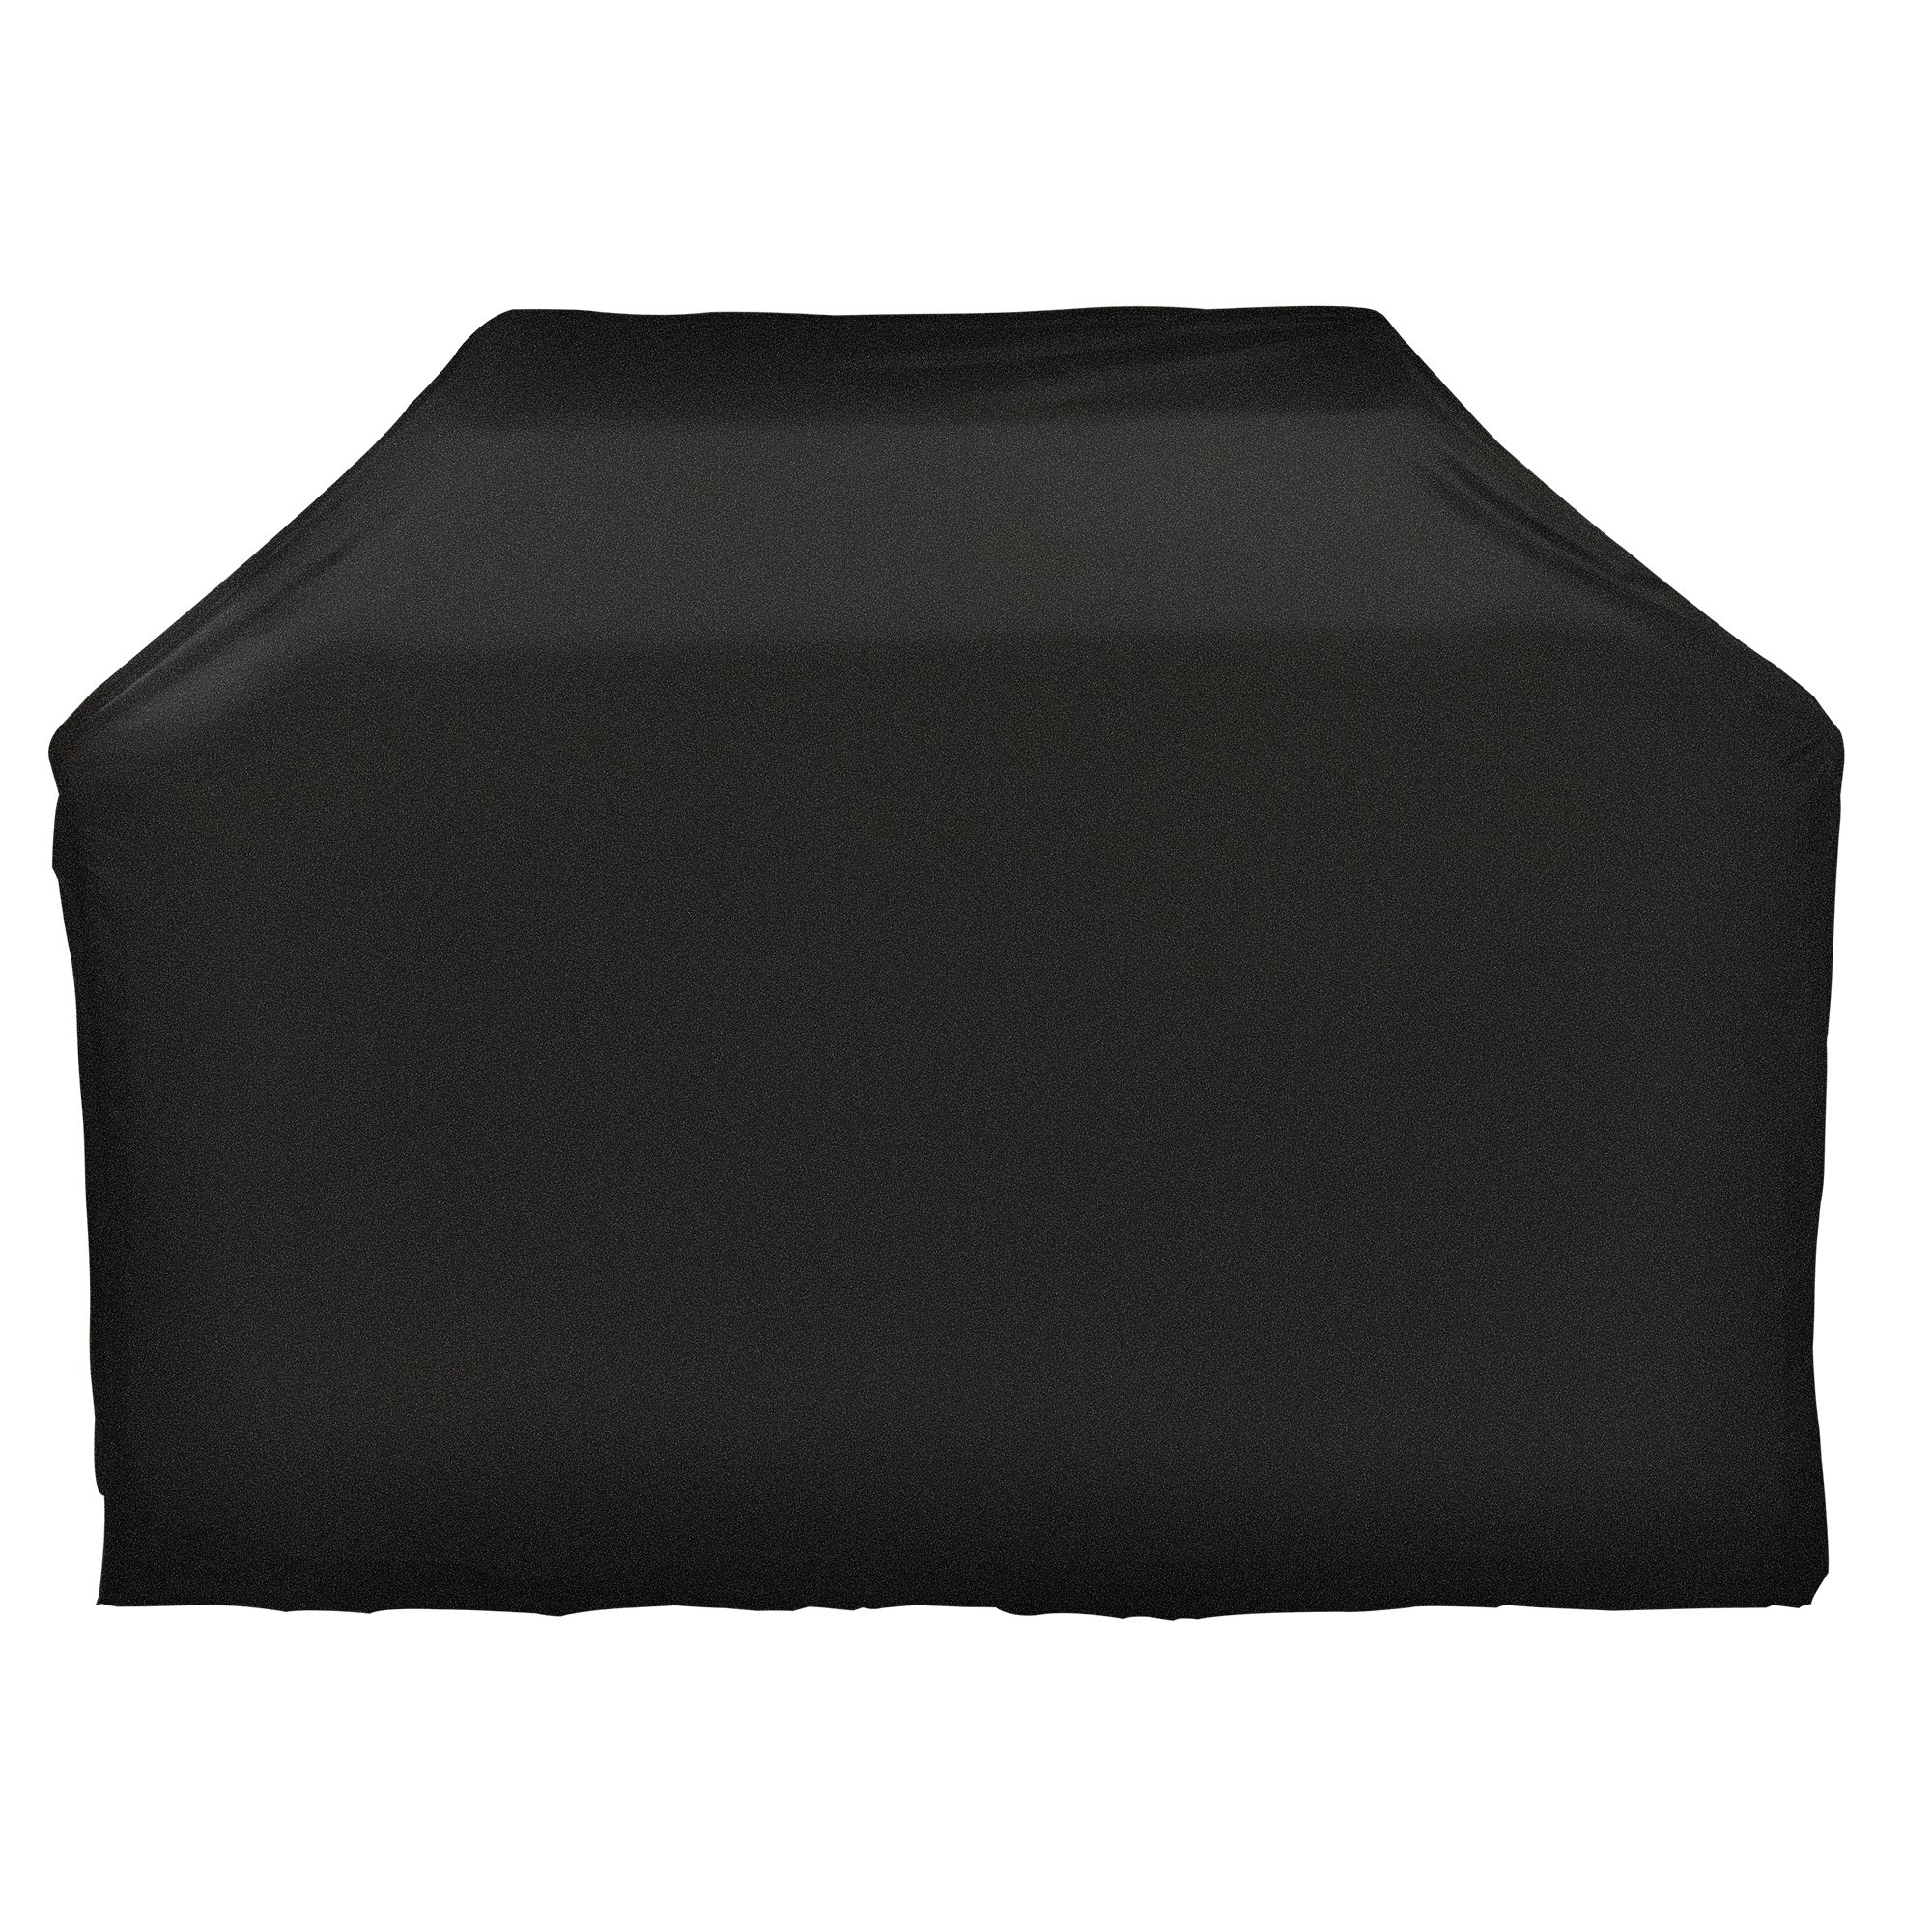 iCOVER Grill Cover- 55 Inch Water Proof Patio Outdoor Black BBQ Barbecue Smoker/Grill Cover G11602-1 for Weber Char-broil Brinkmann Holland JennAir and More